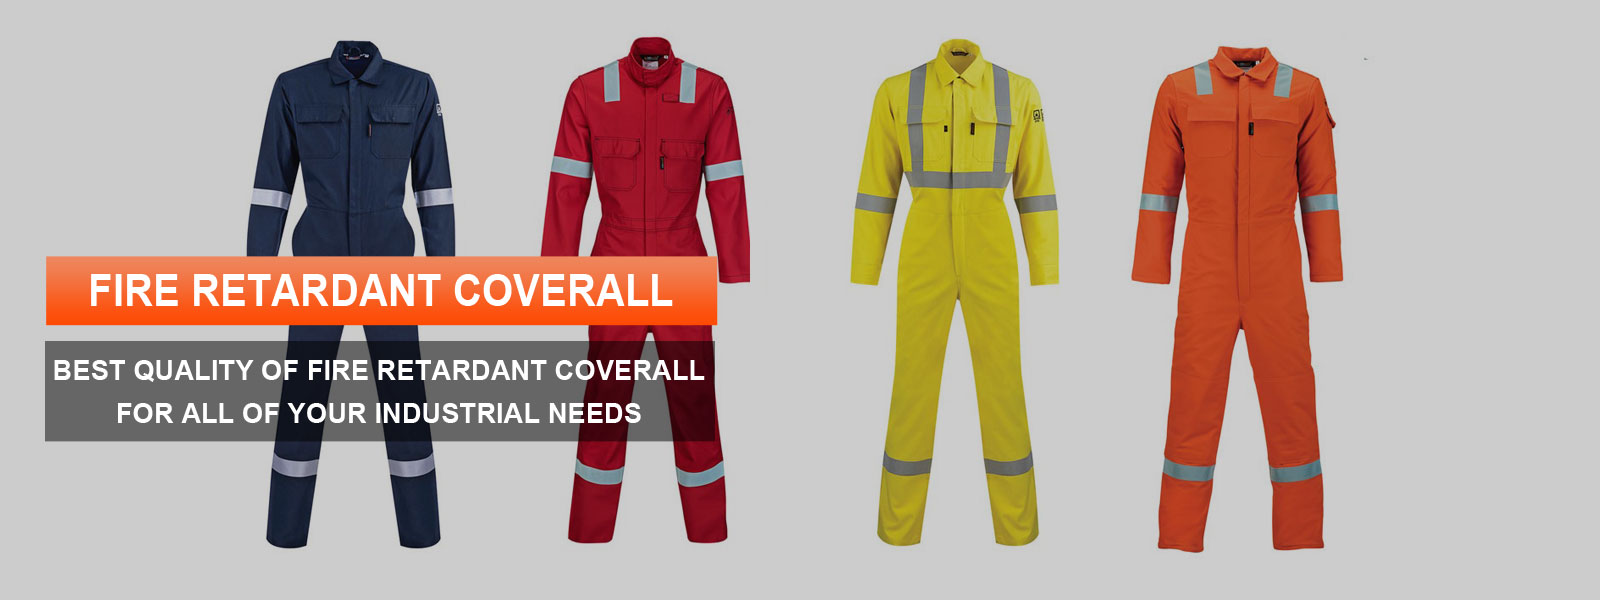 Fire Retardant Coverall Manufacturers in Mayotte